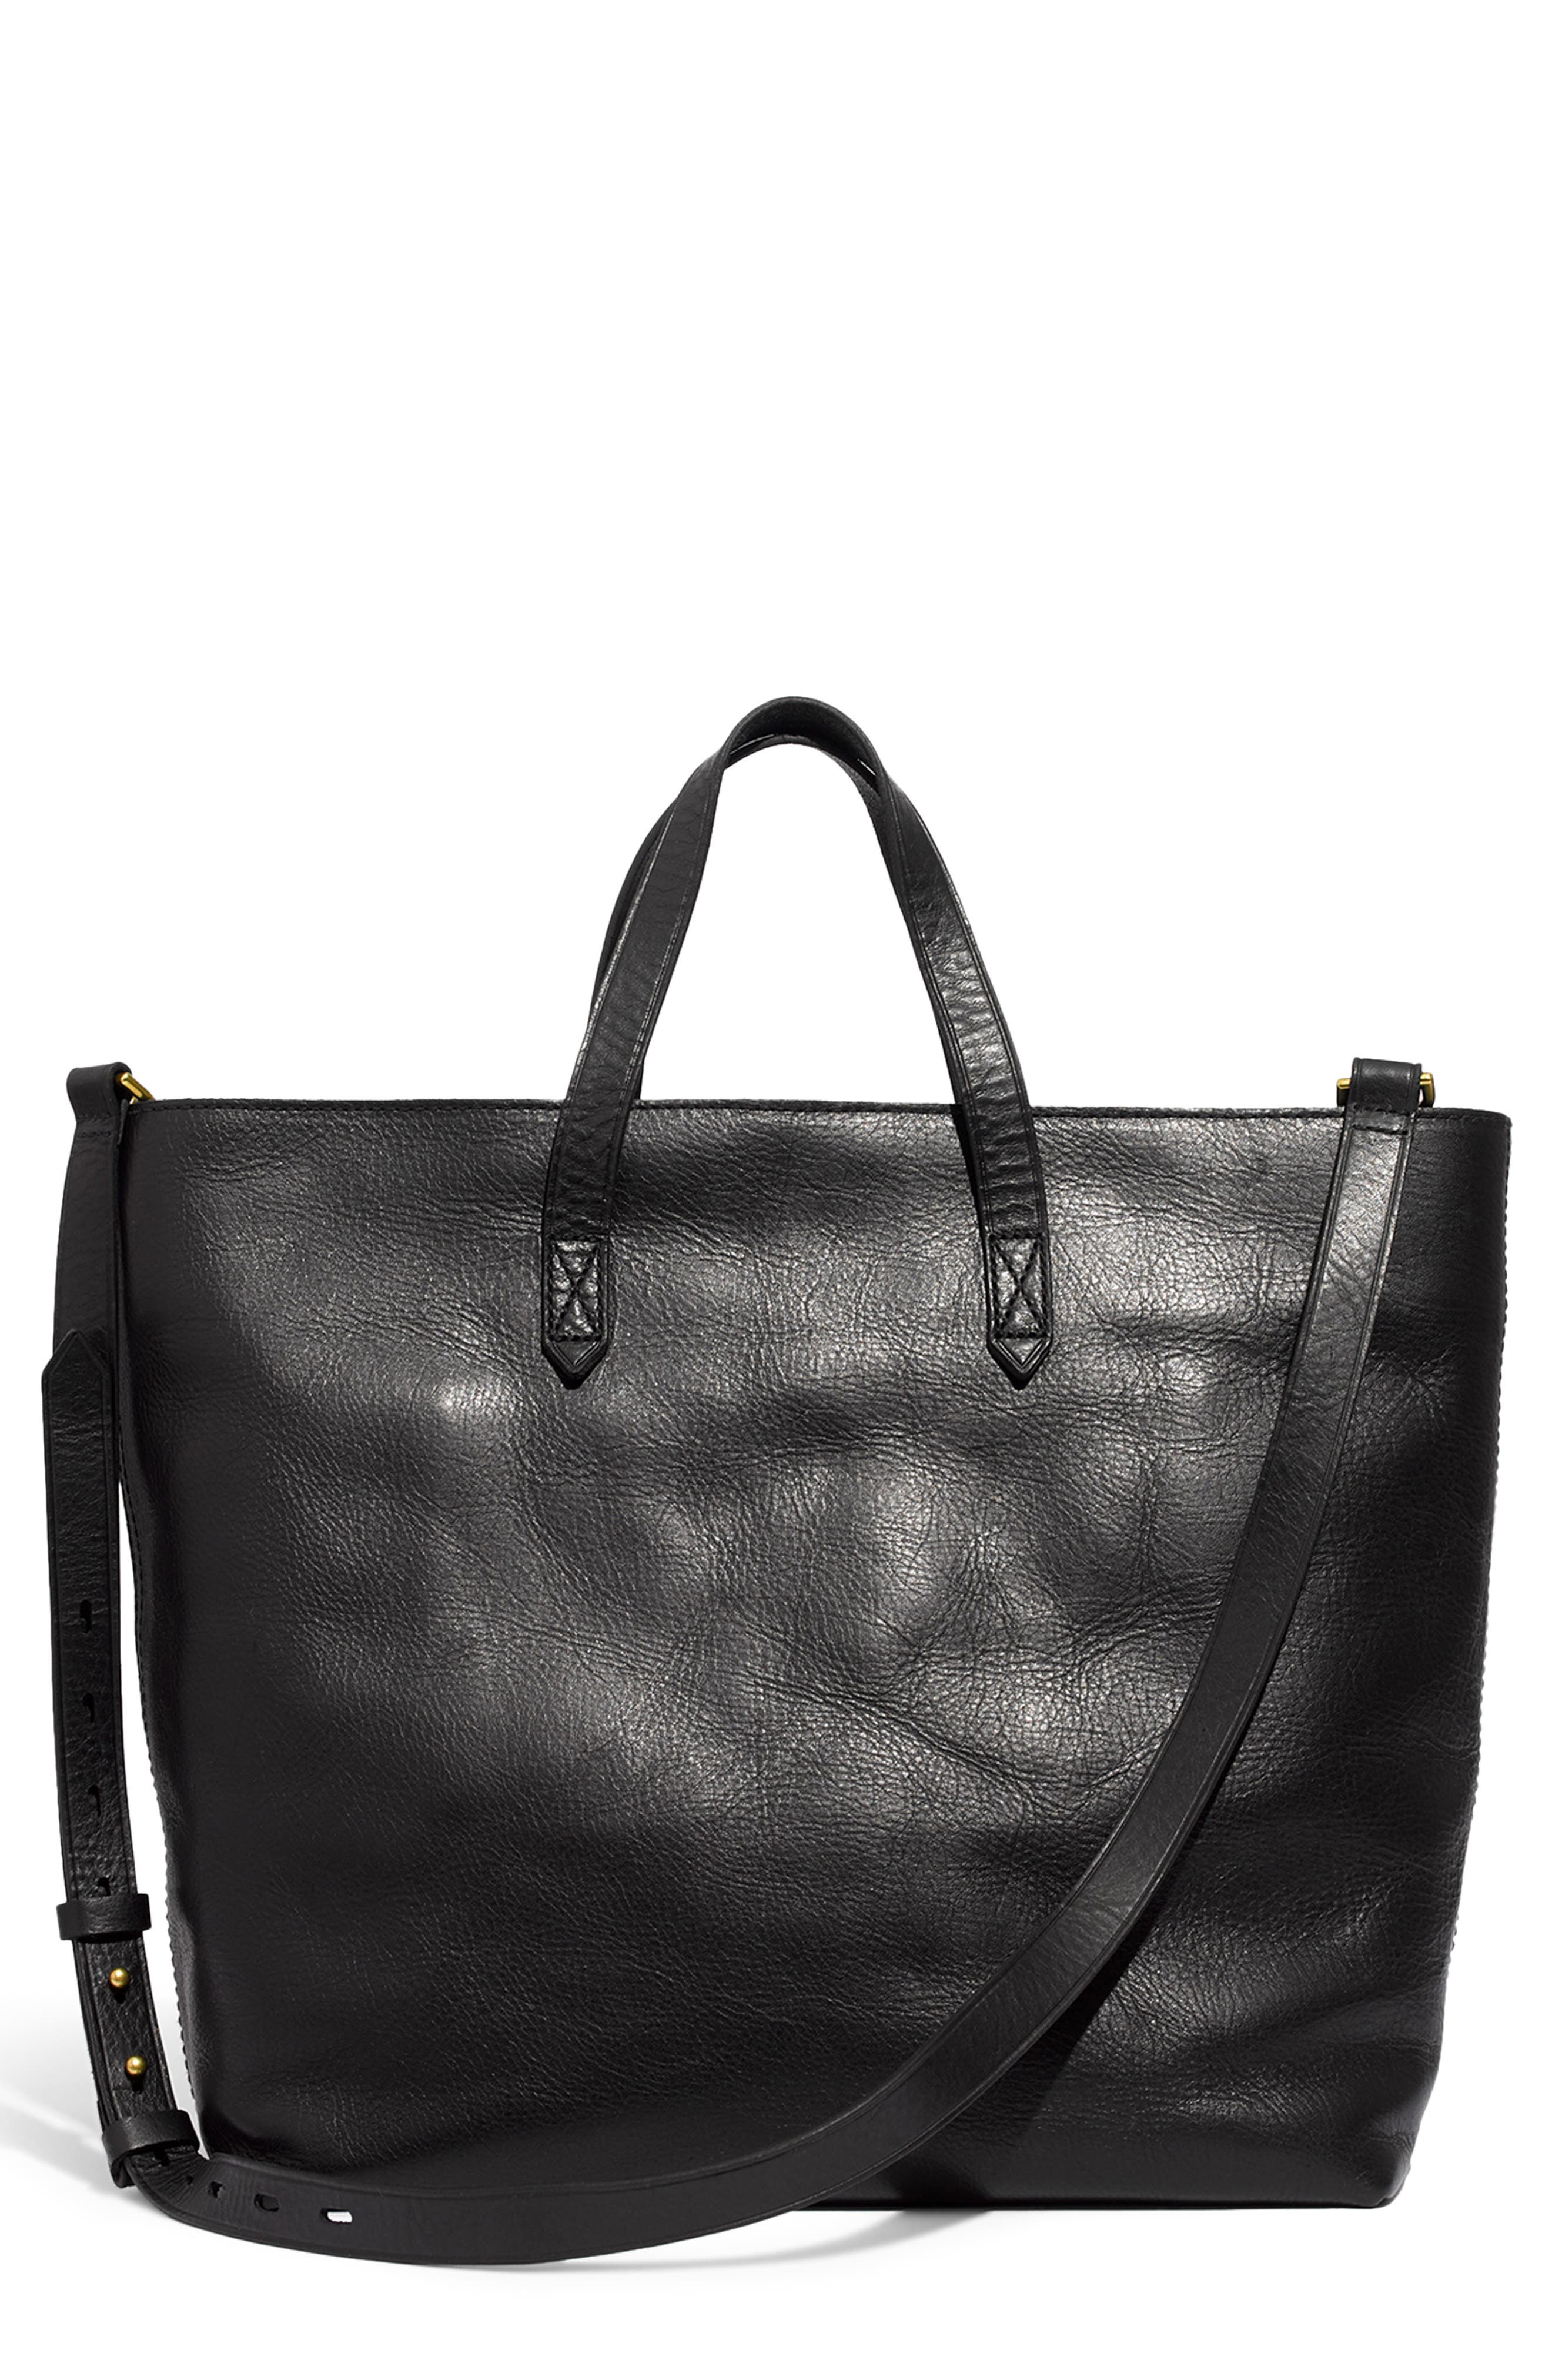 MADEWELL, Zip Top Transport Leather Carryall, Main thumbnail 1, color, TRUE BLACK